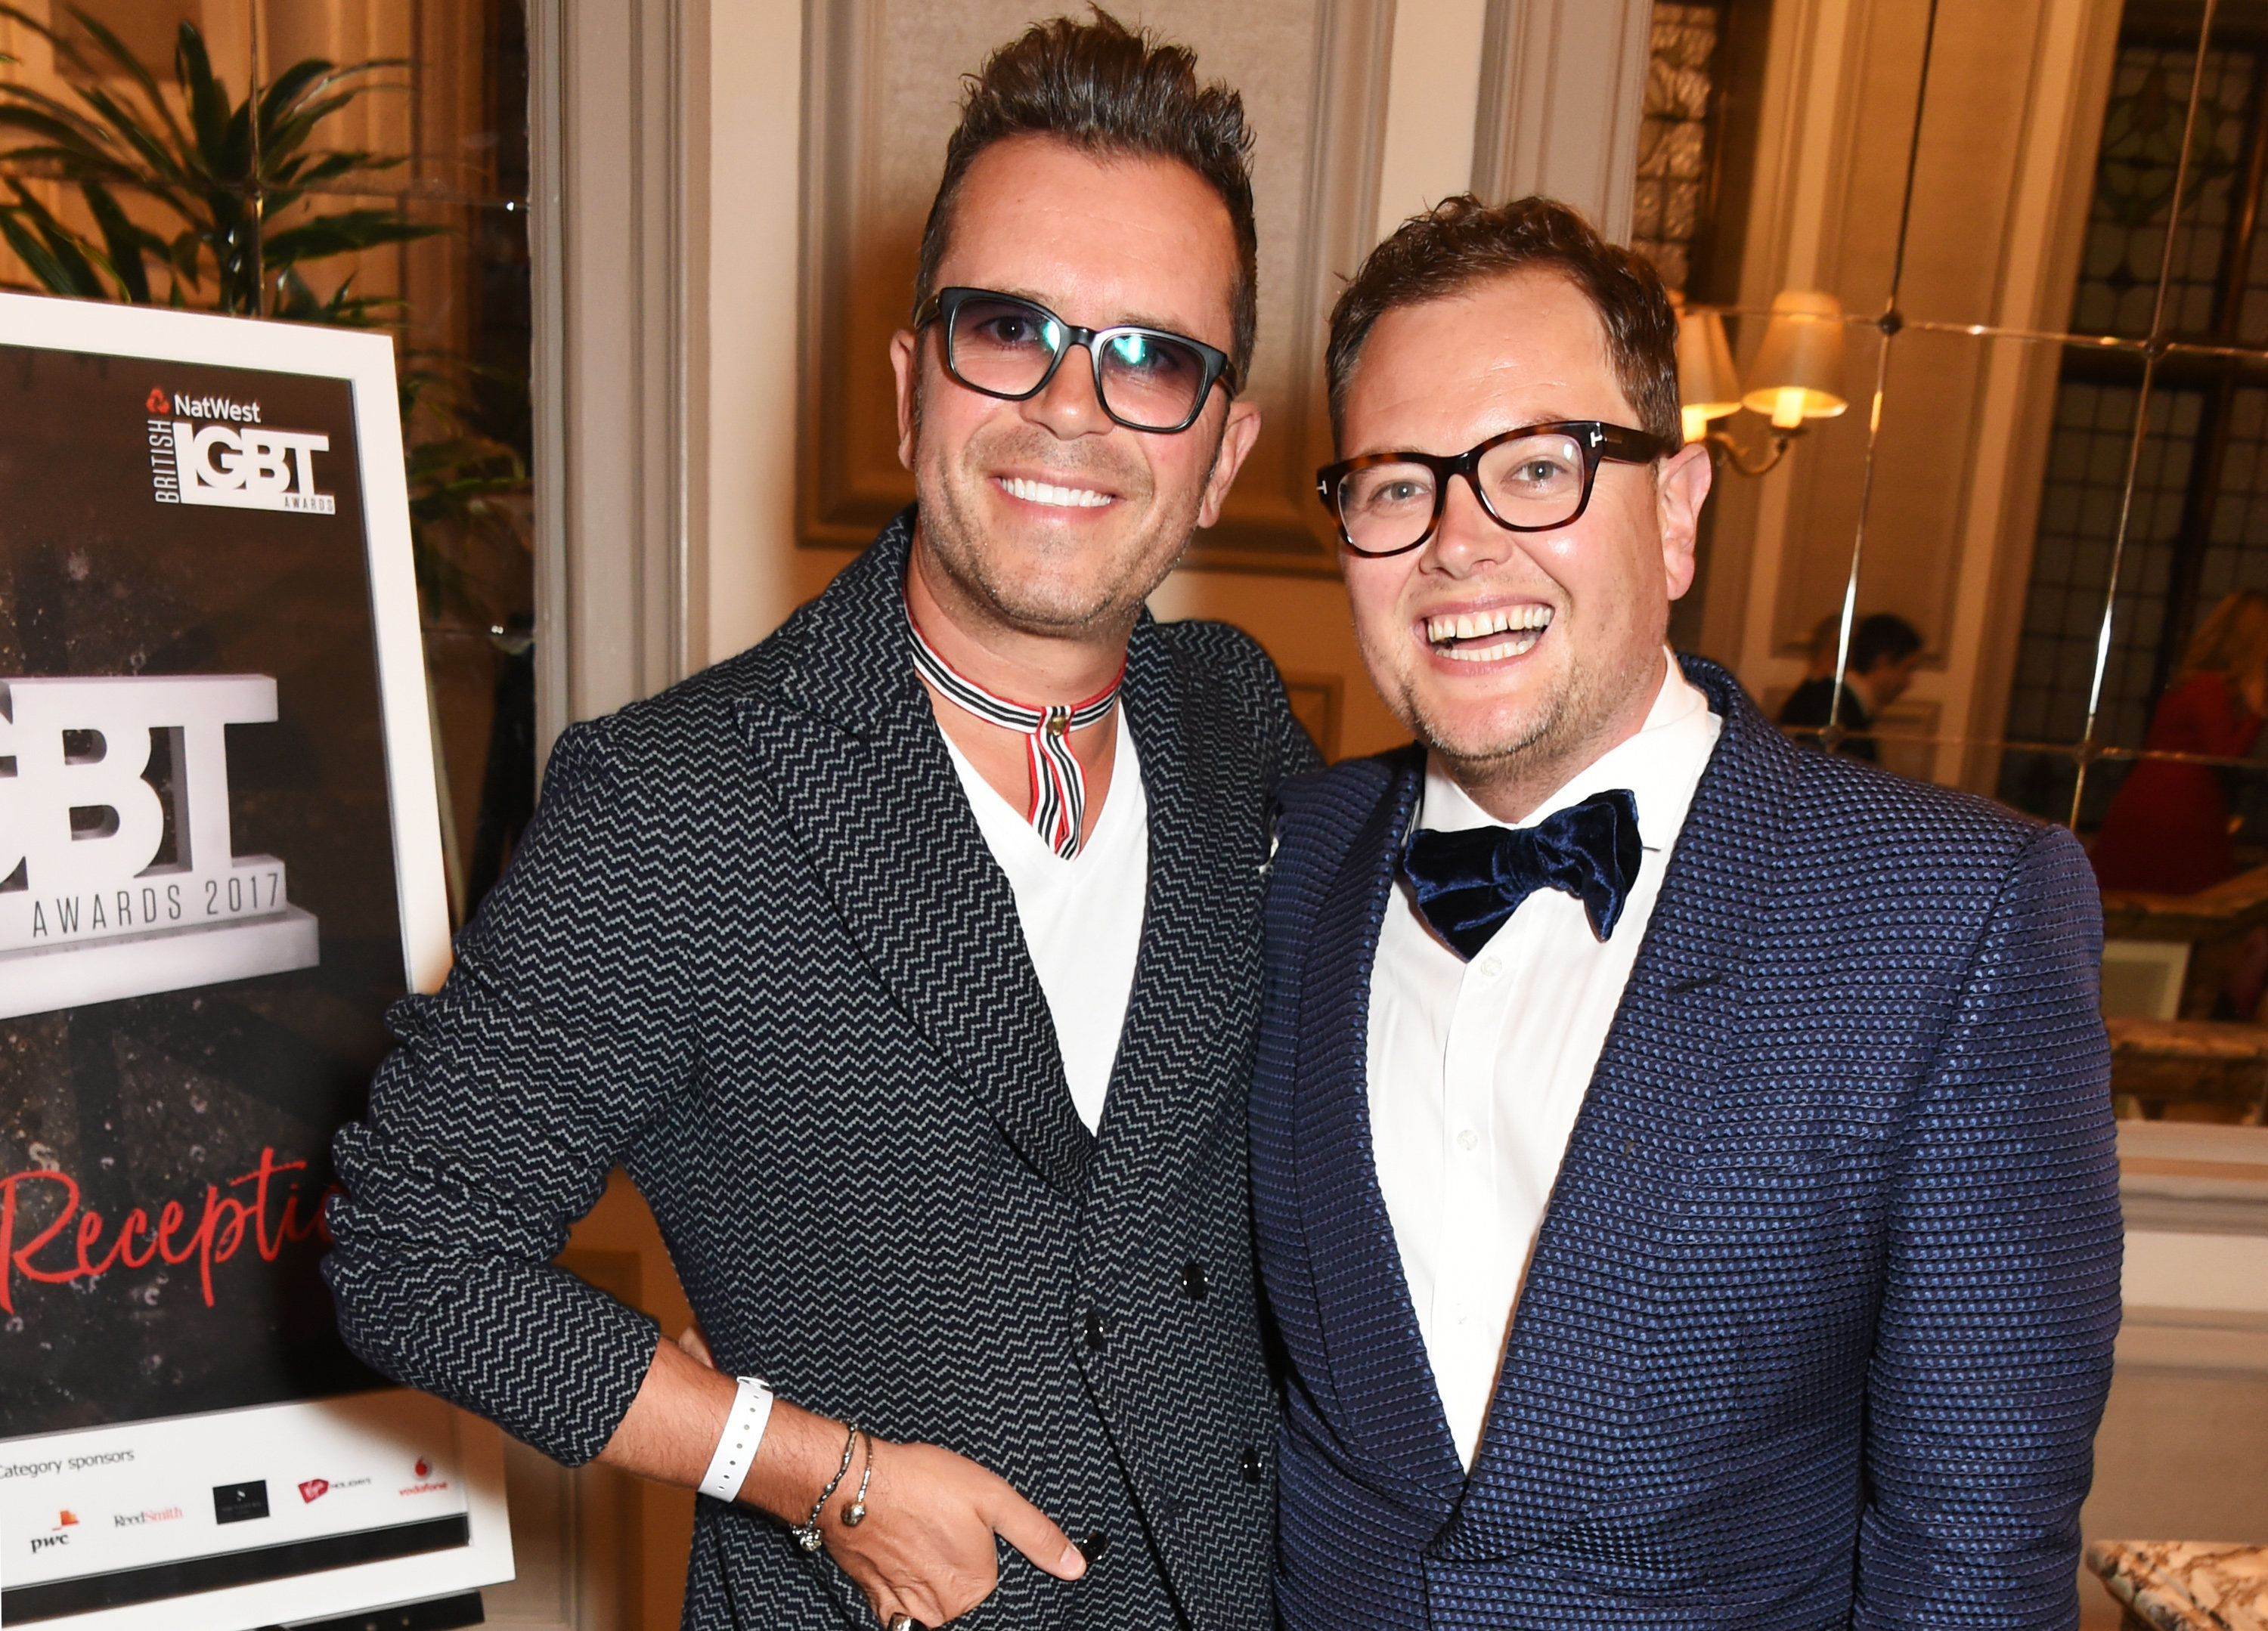 Alan Carr Marries Partner Of 10 Years, Paul Drayton, In Private Ceremony